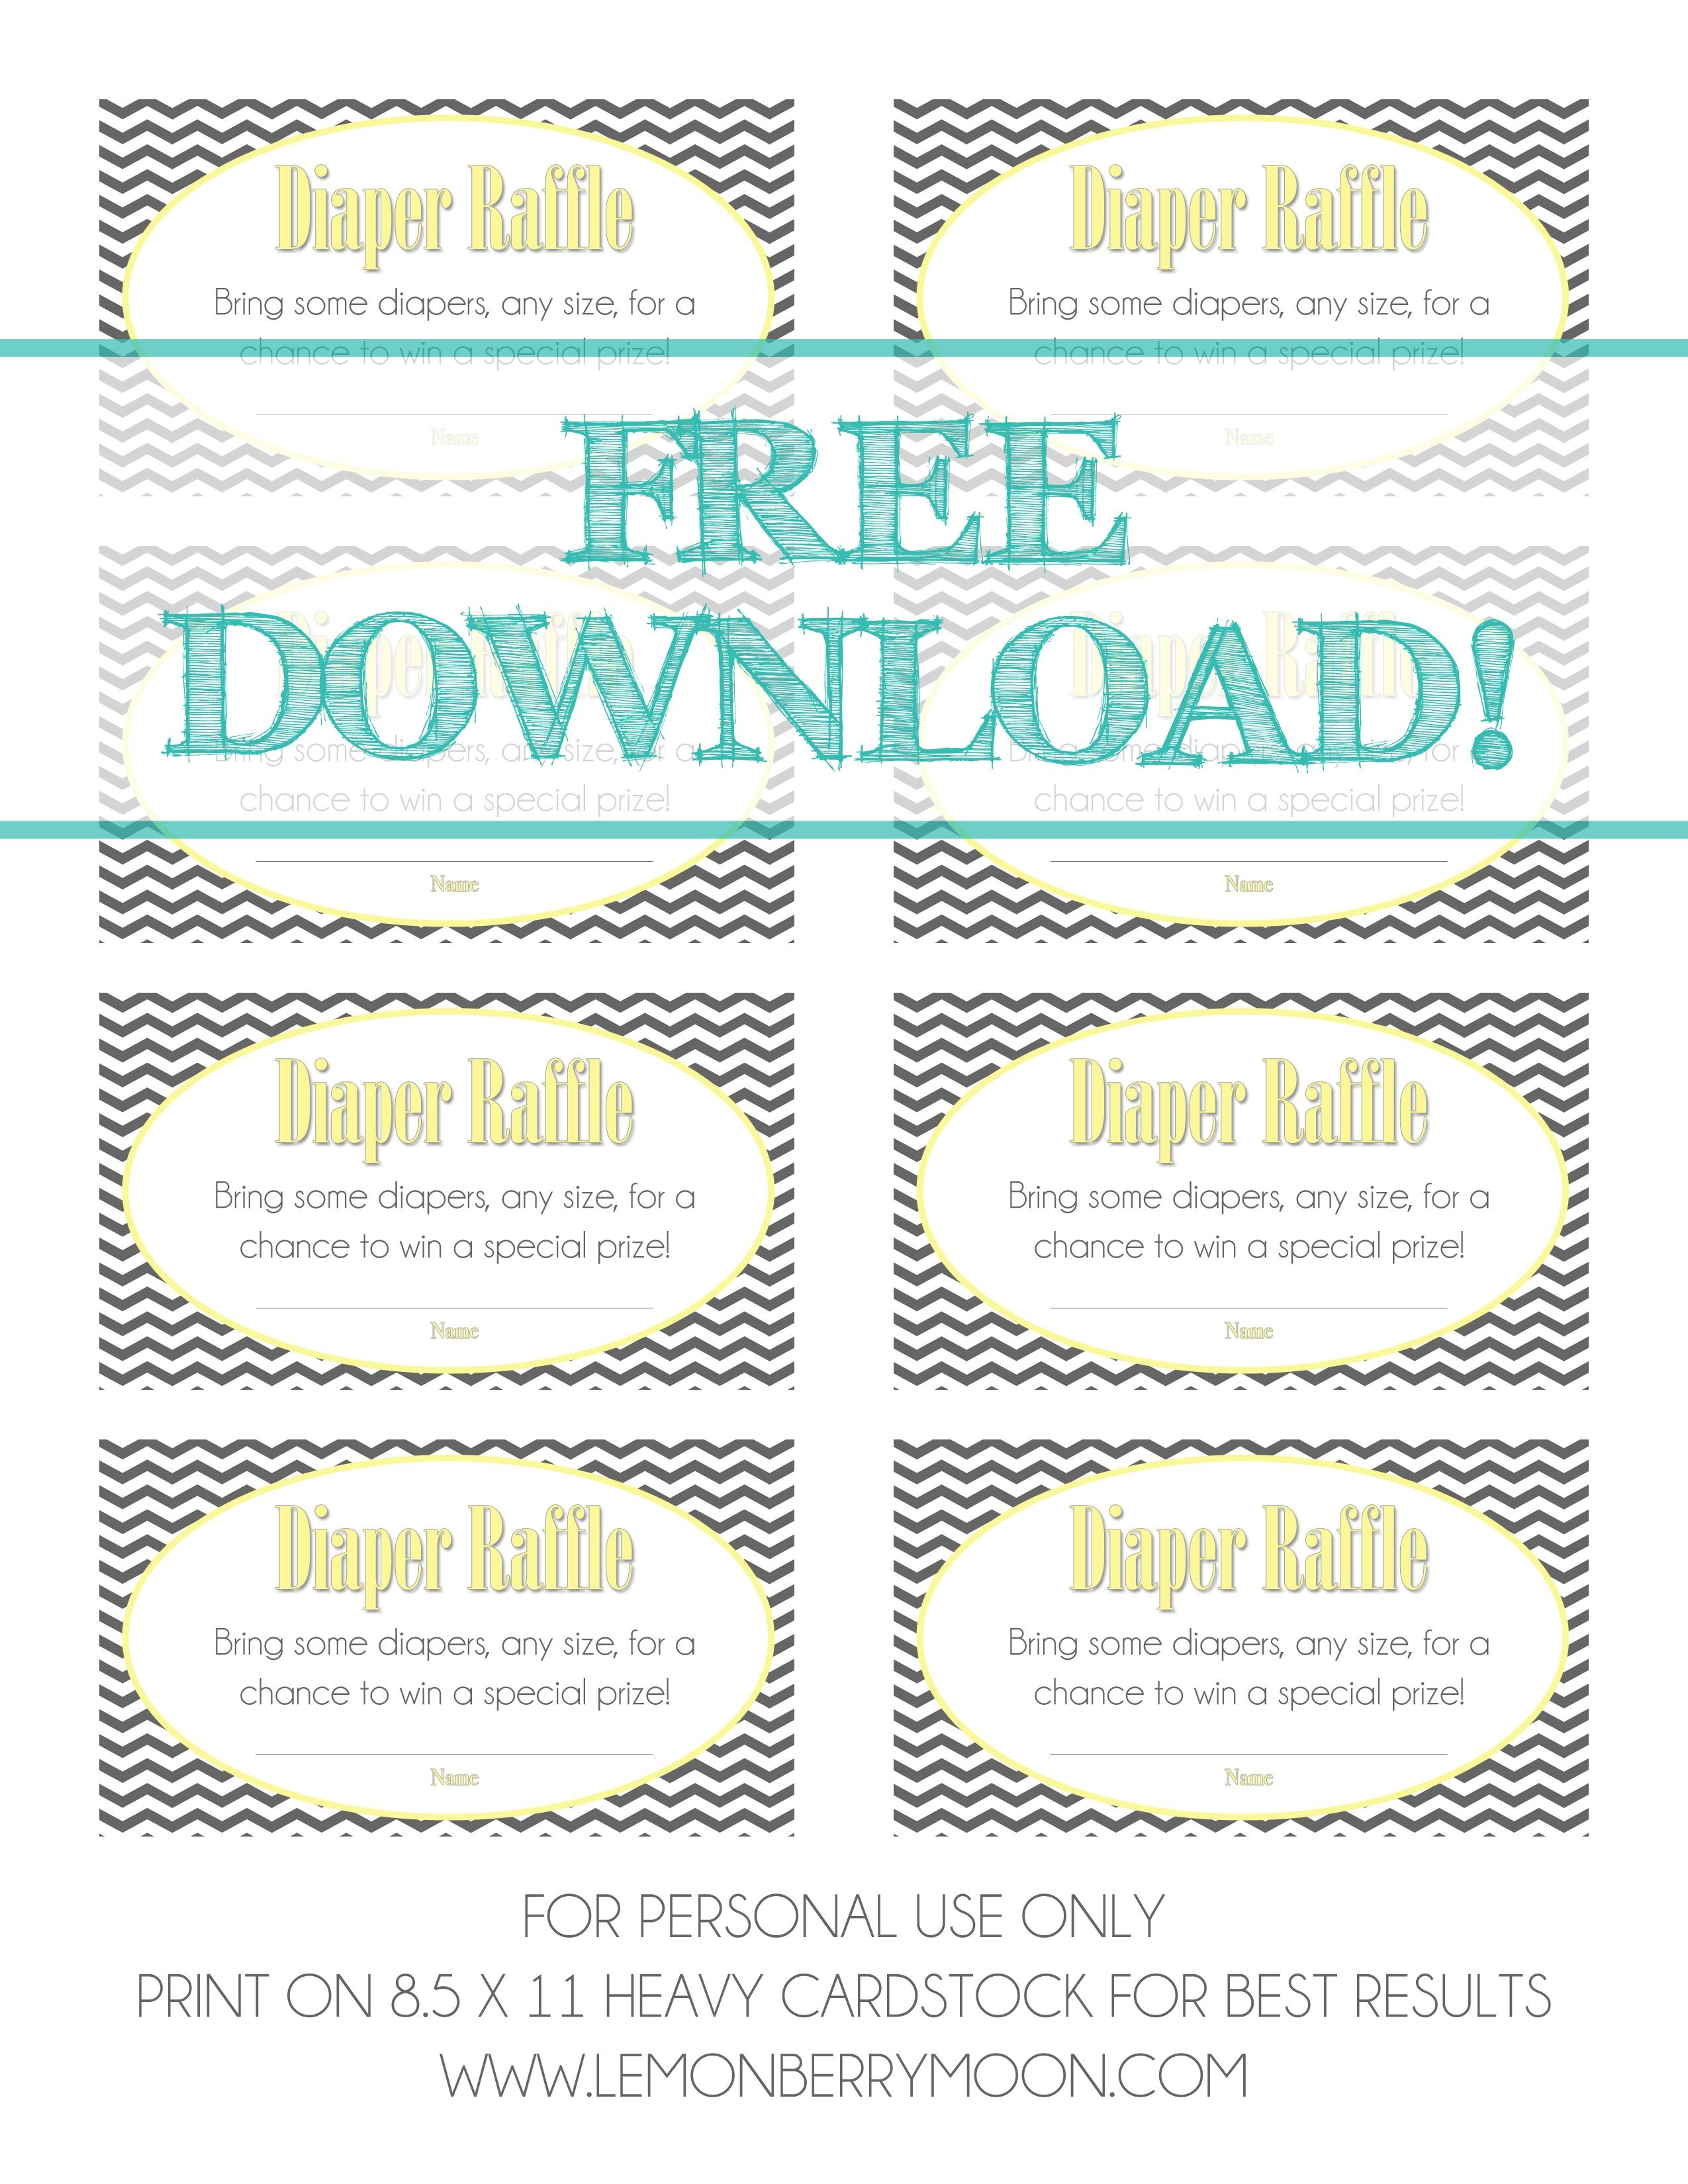 Free Download - Baby Diaper Raffle Template | Baaby Shower | Baby - Free Printable Baby Shower Diaper Raffle Tickets